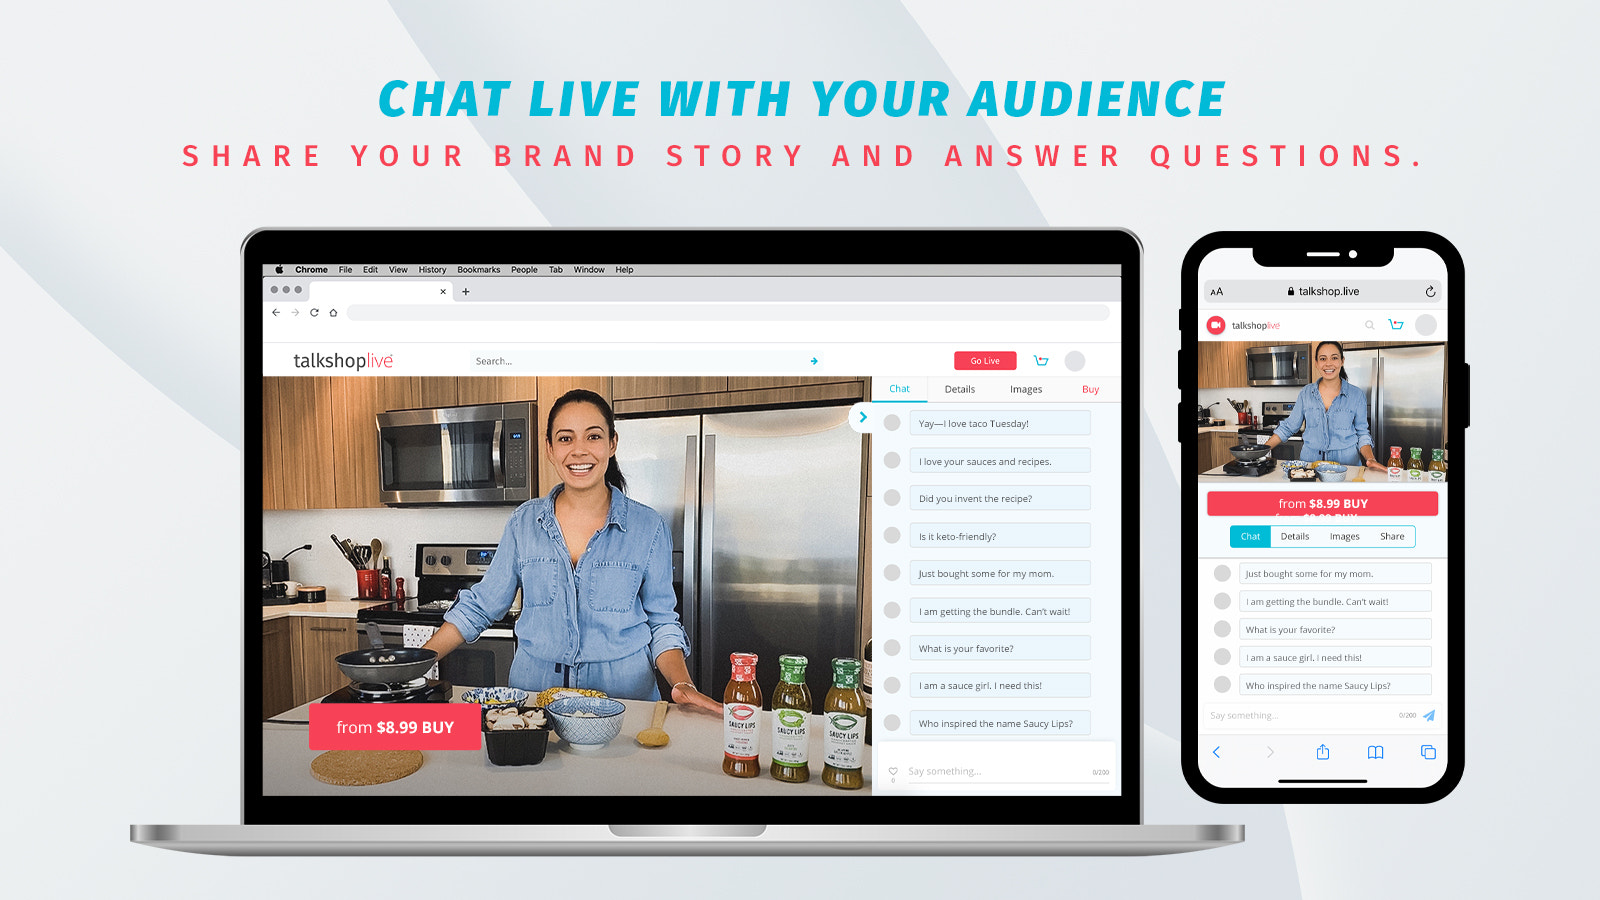 Chat live with your audience